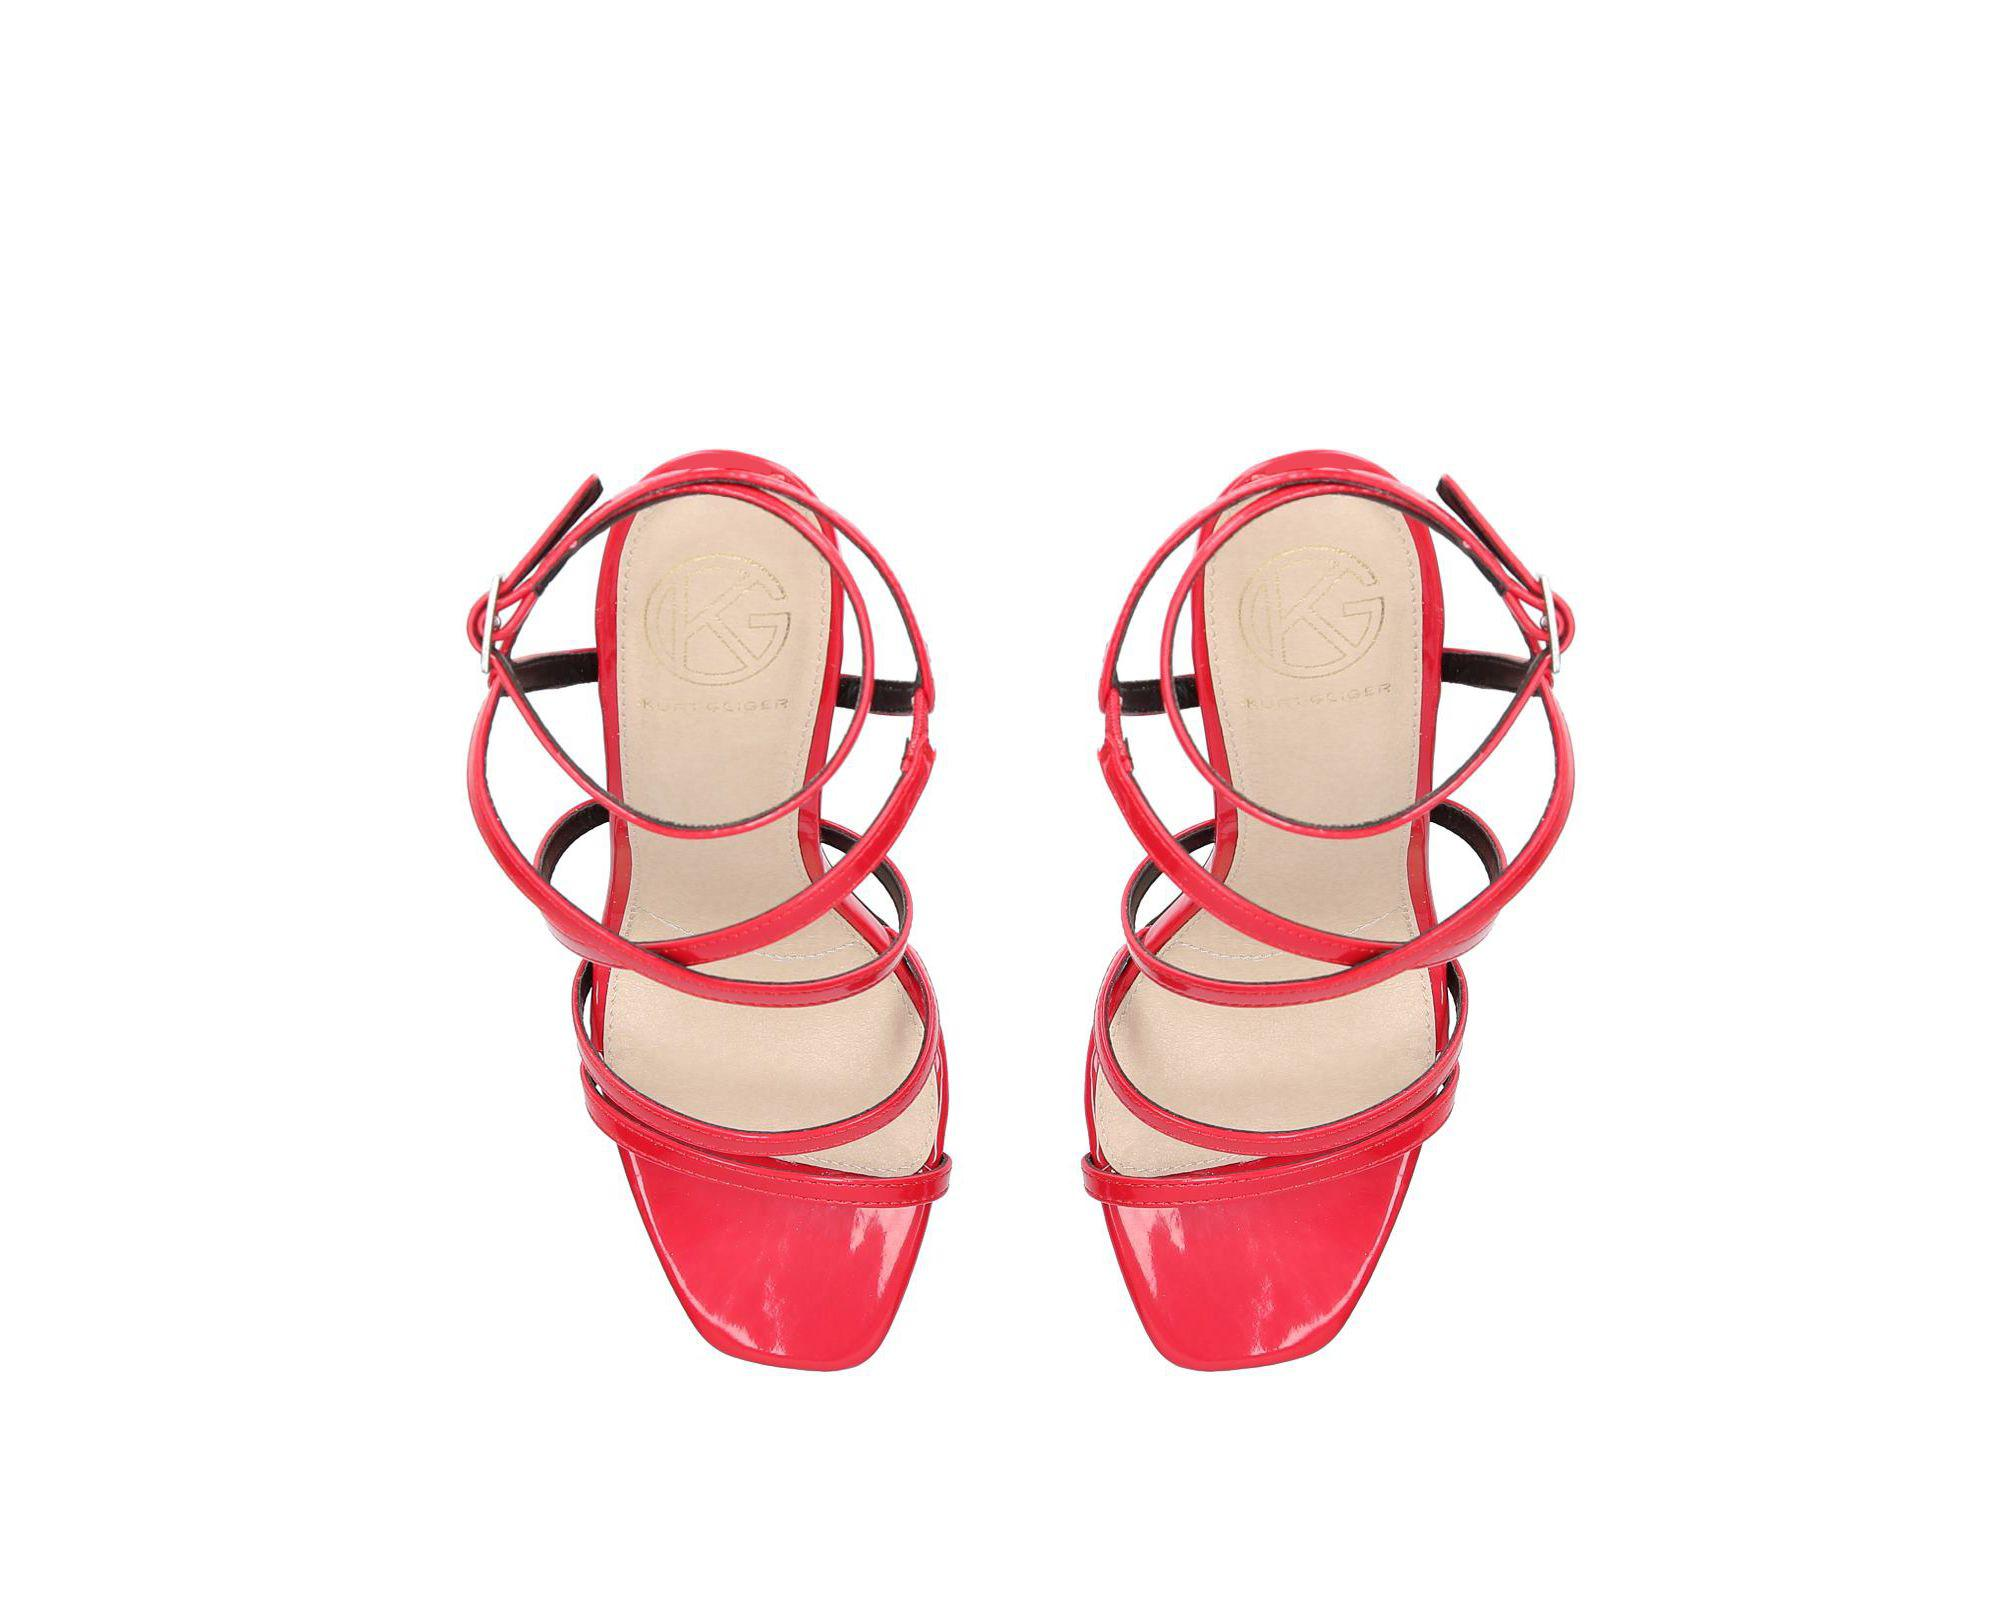 2fd7d0bfb5abe8 KG by Kurt Geiger Alexis Strappy Sandals in Red - Save 30% - Lyst